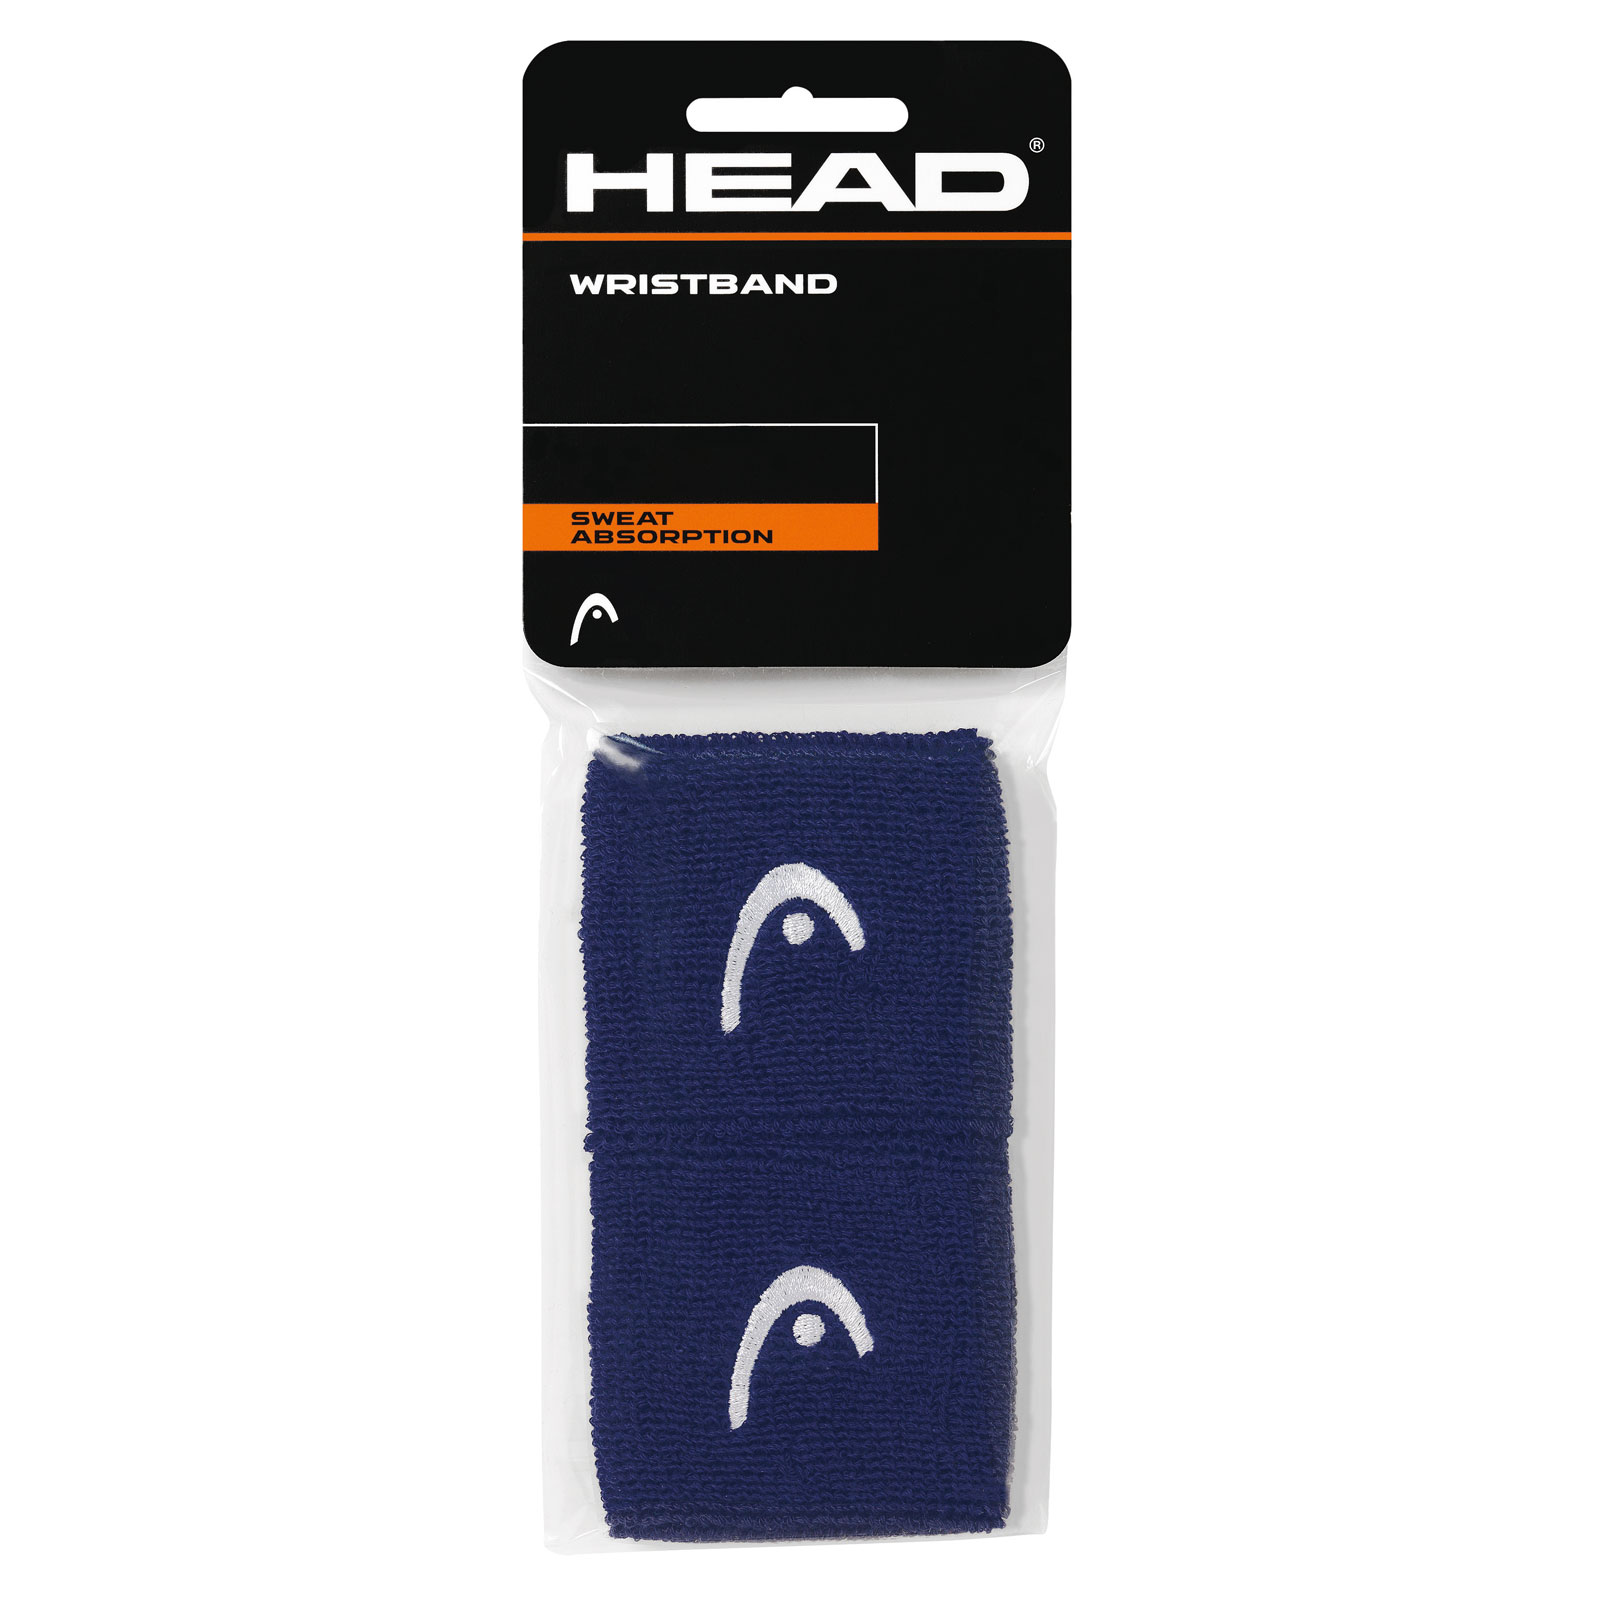 "HEAD Wristband 2,5"" 2016 navy"